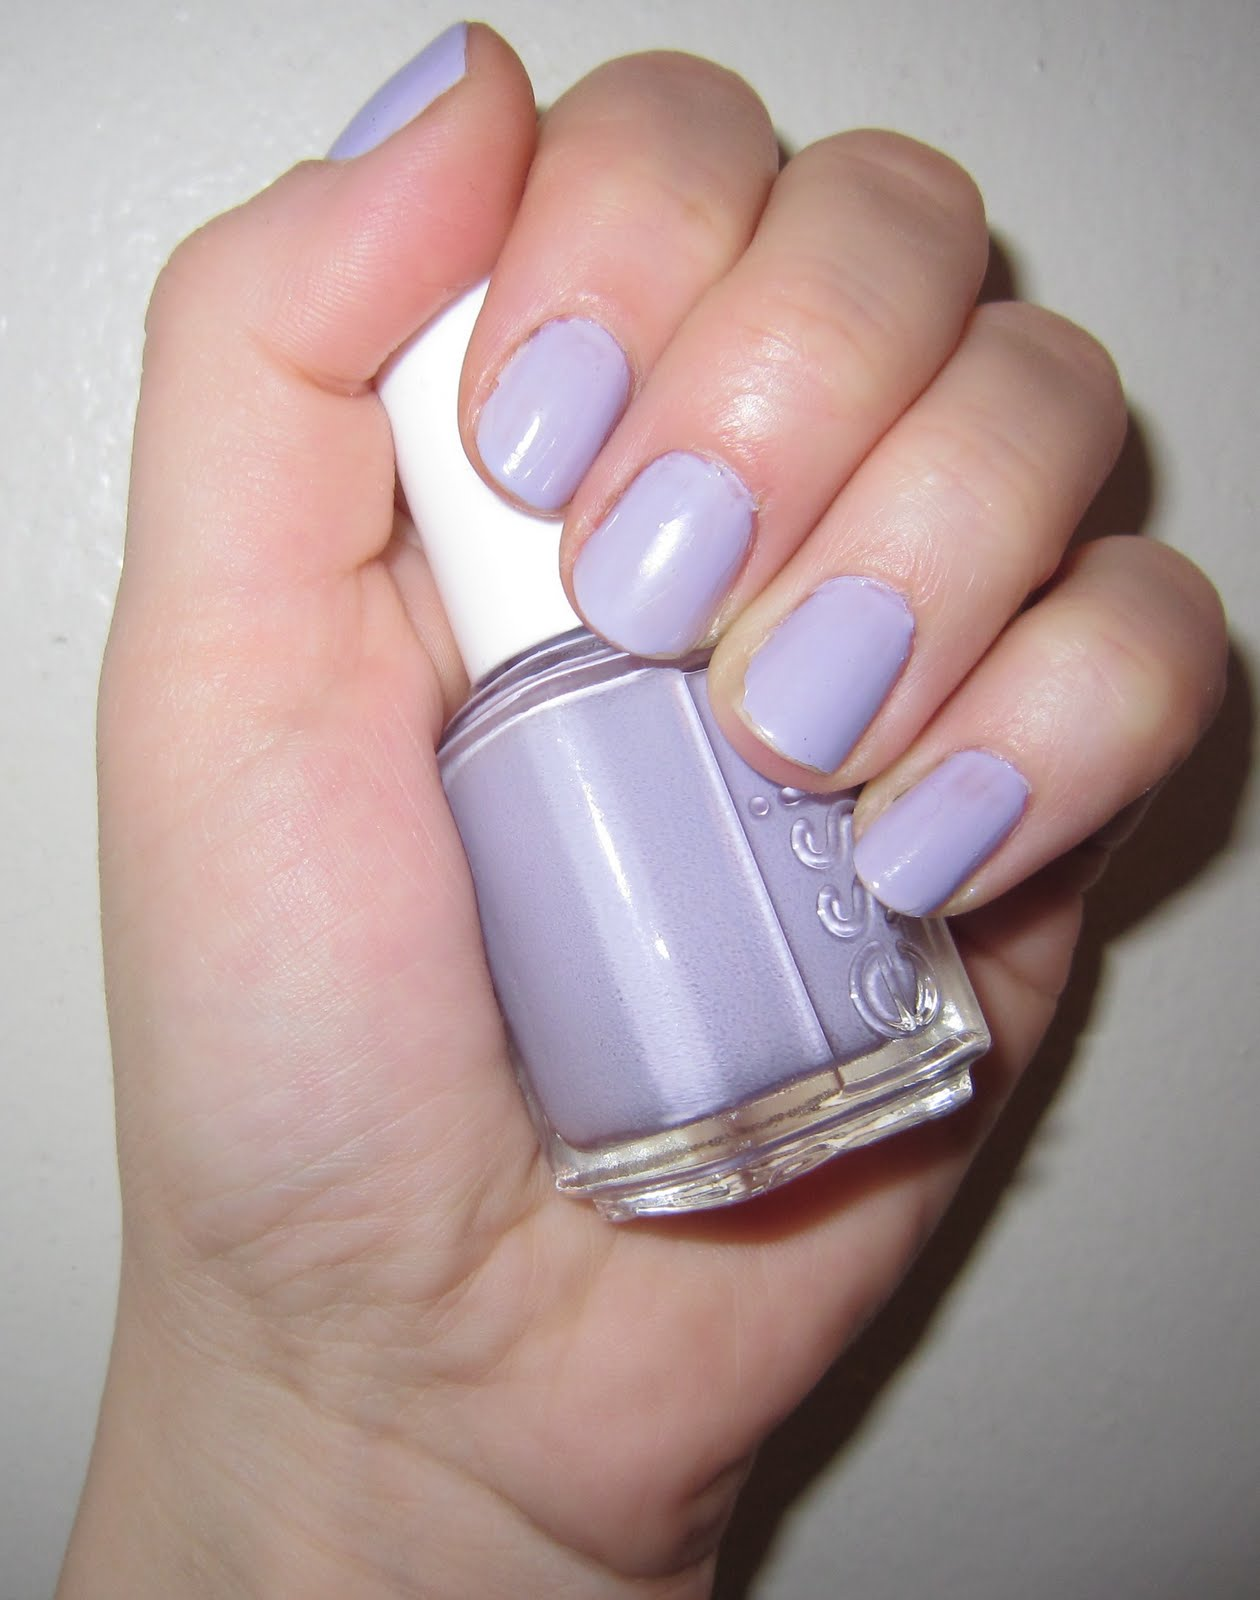 The Beauty of Life: Mani of the Week: Essie Nail Polish in Lilacism